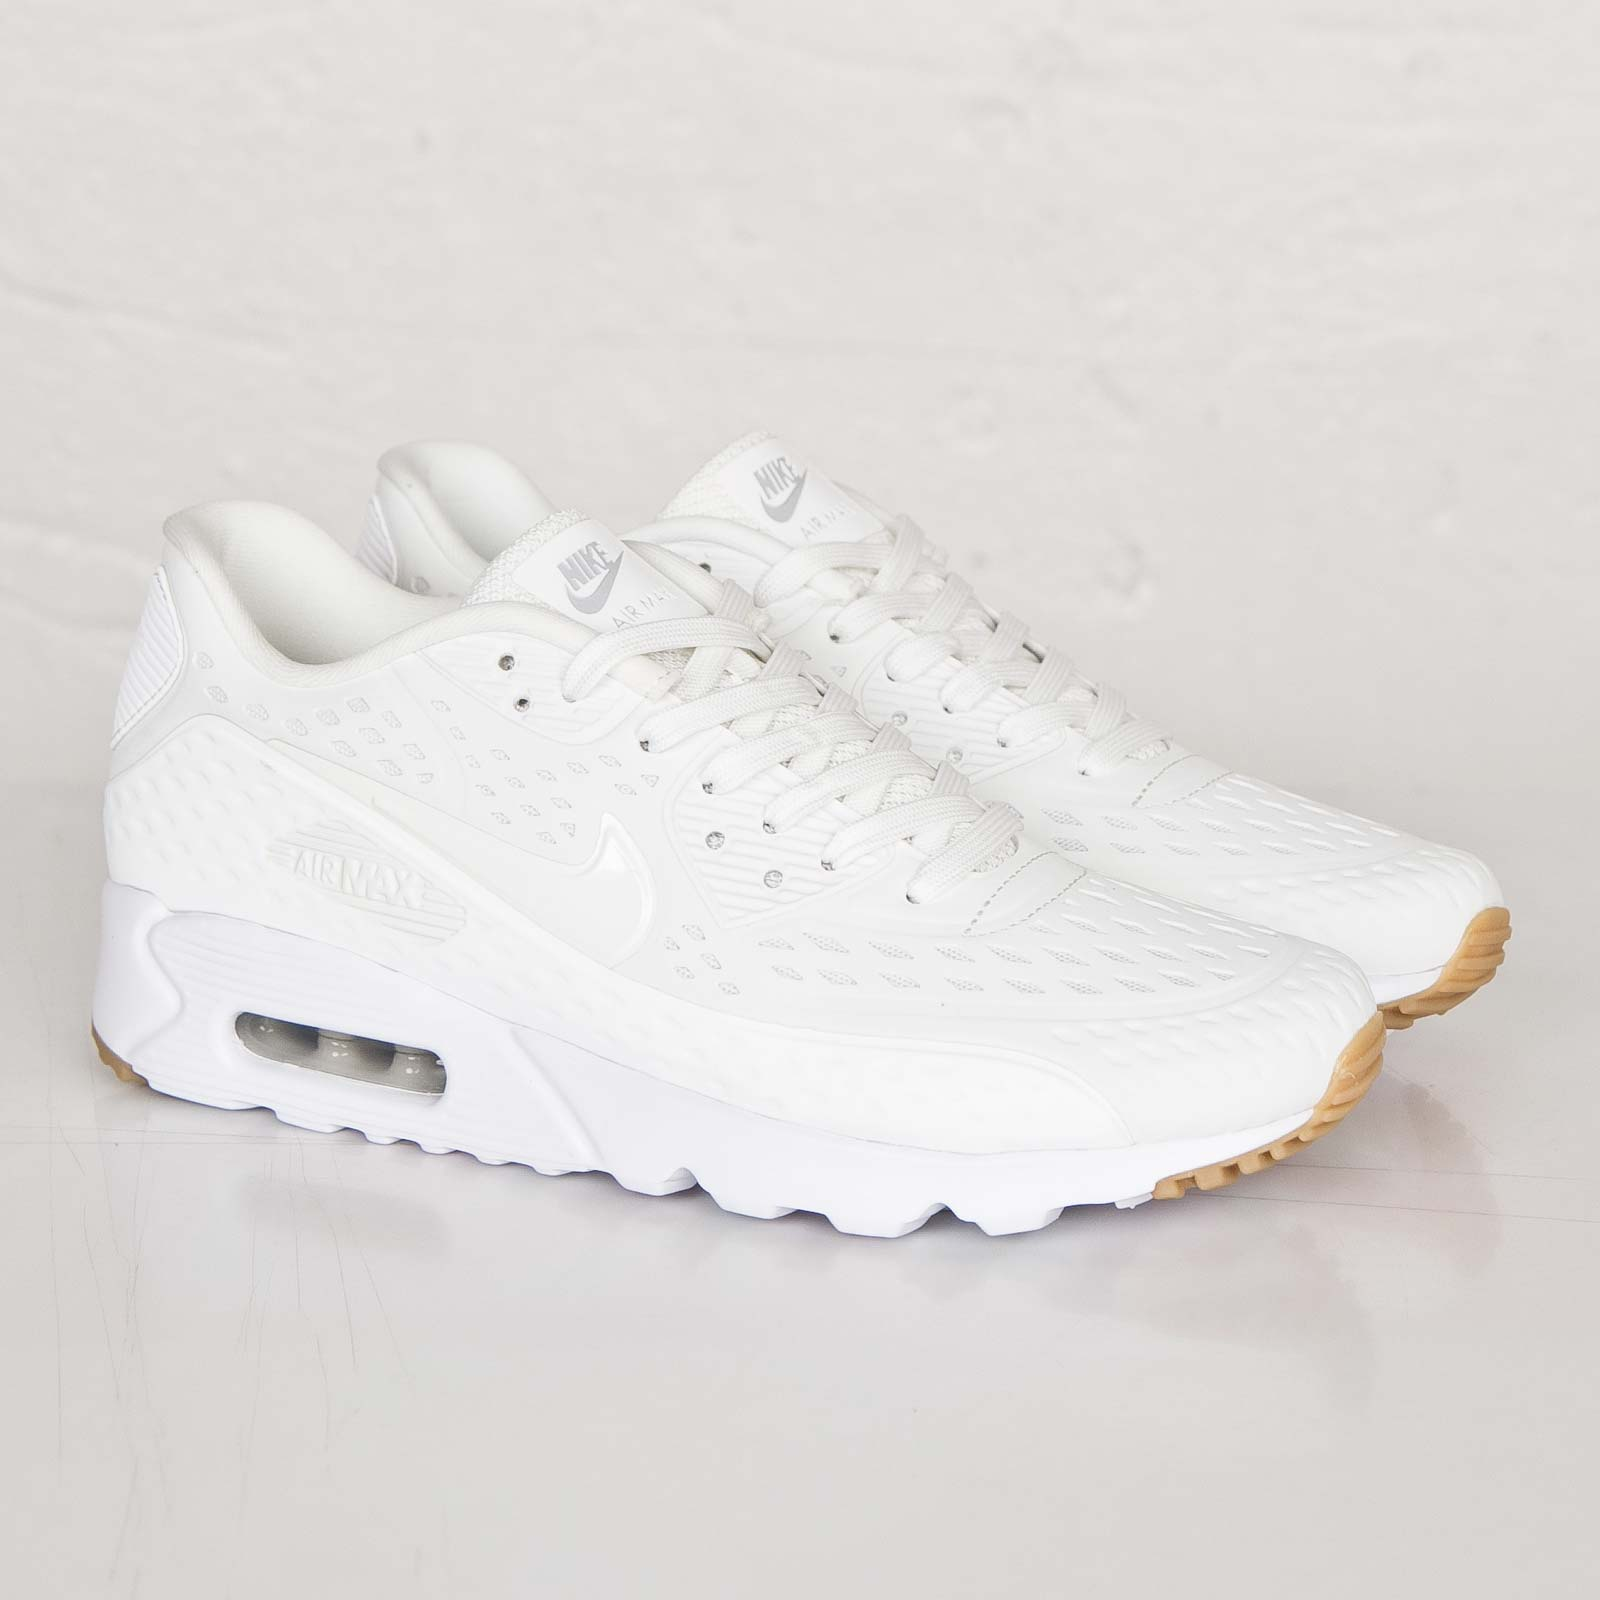 Nike Air Max 90 Ultra Br 725222 100 Sneakersnstuff I